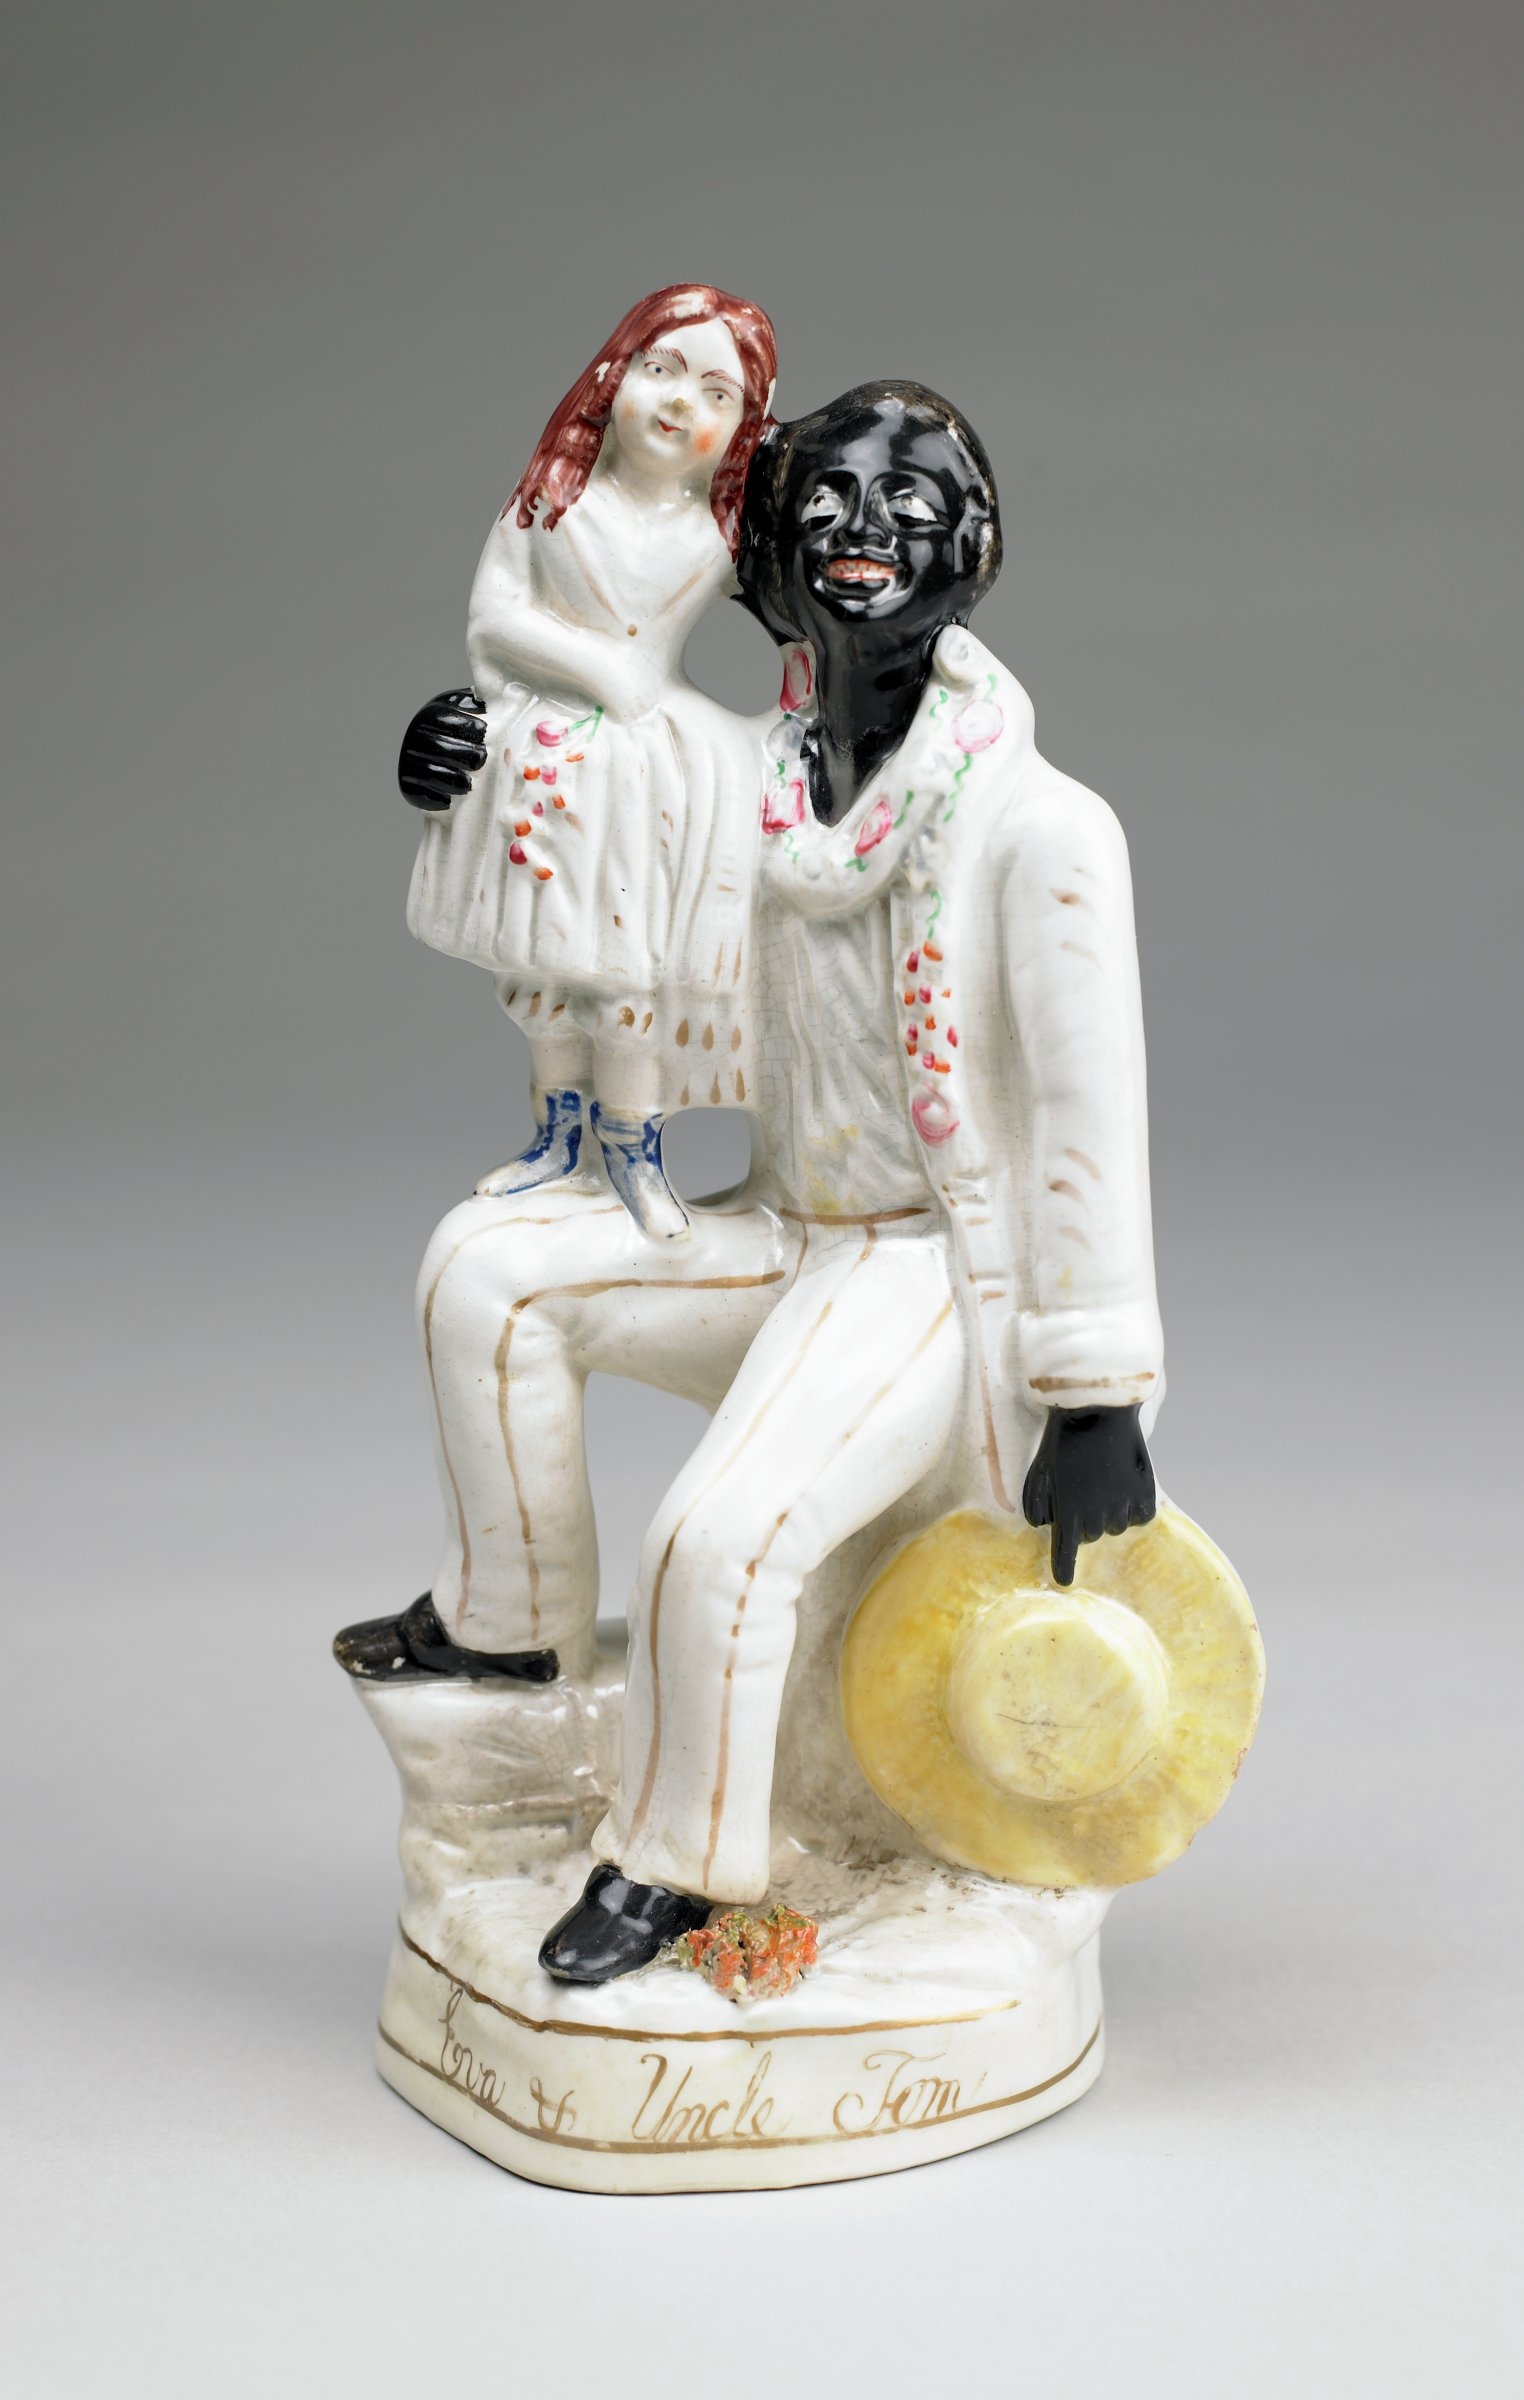 """Creamware flatback figural group of Uncle Tom and little Eva from """"Uncle Tom's Cabin,"""" Uncle Tom sits on a stump with his right foot resting on a wrapped package, he wears a white suit picked out in gold, his shoes, face and hands are glazed black, in his left hand he holds a yellow straw hat, around his neck is a floral garland, with a small sprig of foliage at his left foot, Eva stands on his right knee, she wears a white dress and holds a floral sprig in her right hand, her shoes are blue and her hair is brown, Uncle Tom's right hand is around Eva's waist, holding her on his knee, Eva's left arm is around Uncle Tom's neck, the base with two parallel gold lines and the names """"Eva & Uncle Tom"""" in script."""